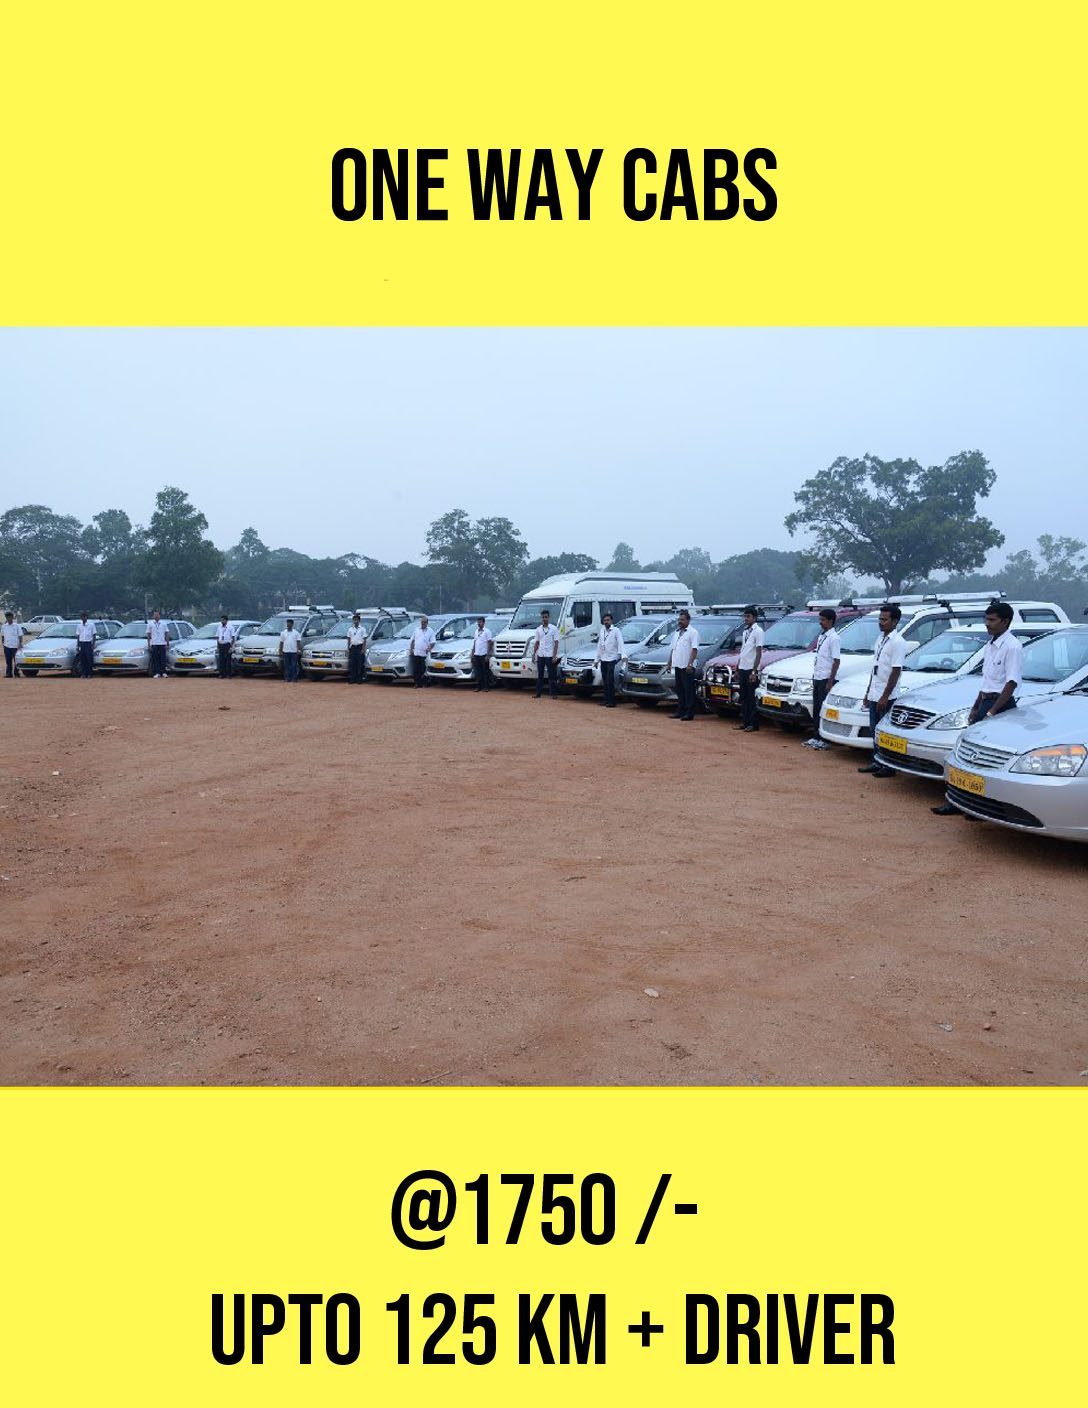 coorg-one-way-cabs-fare